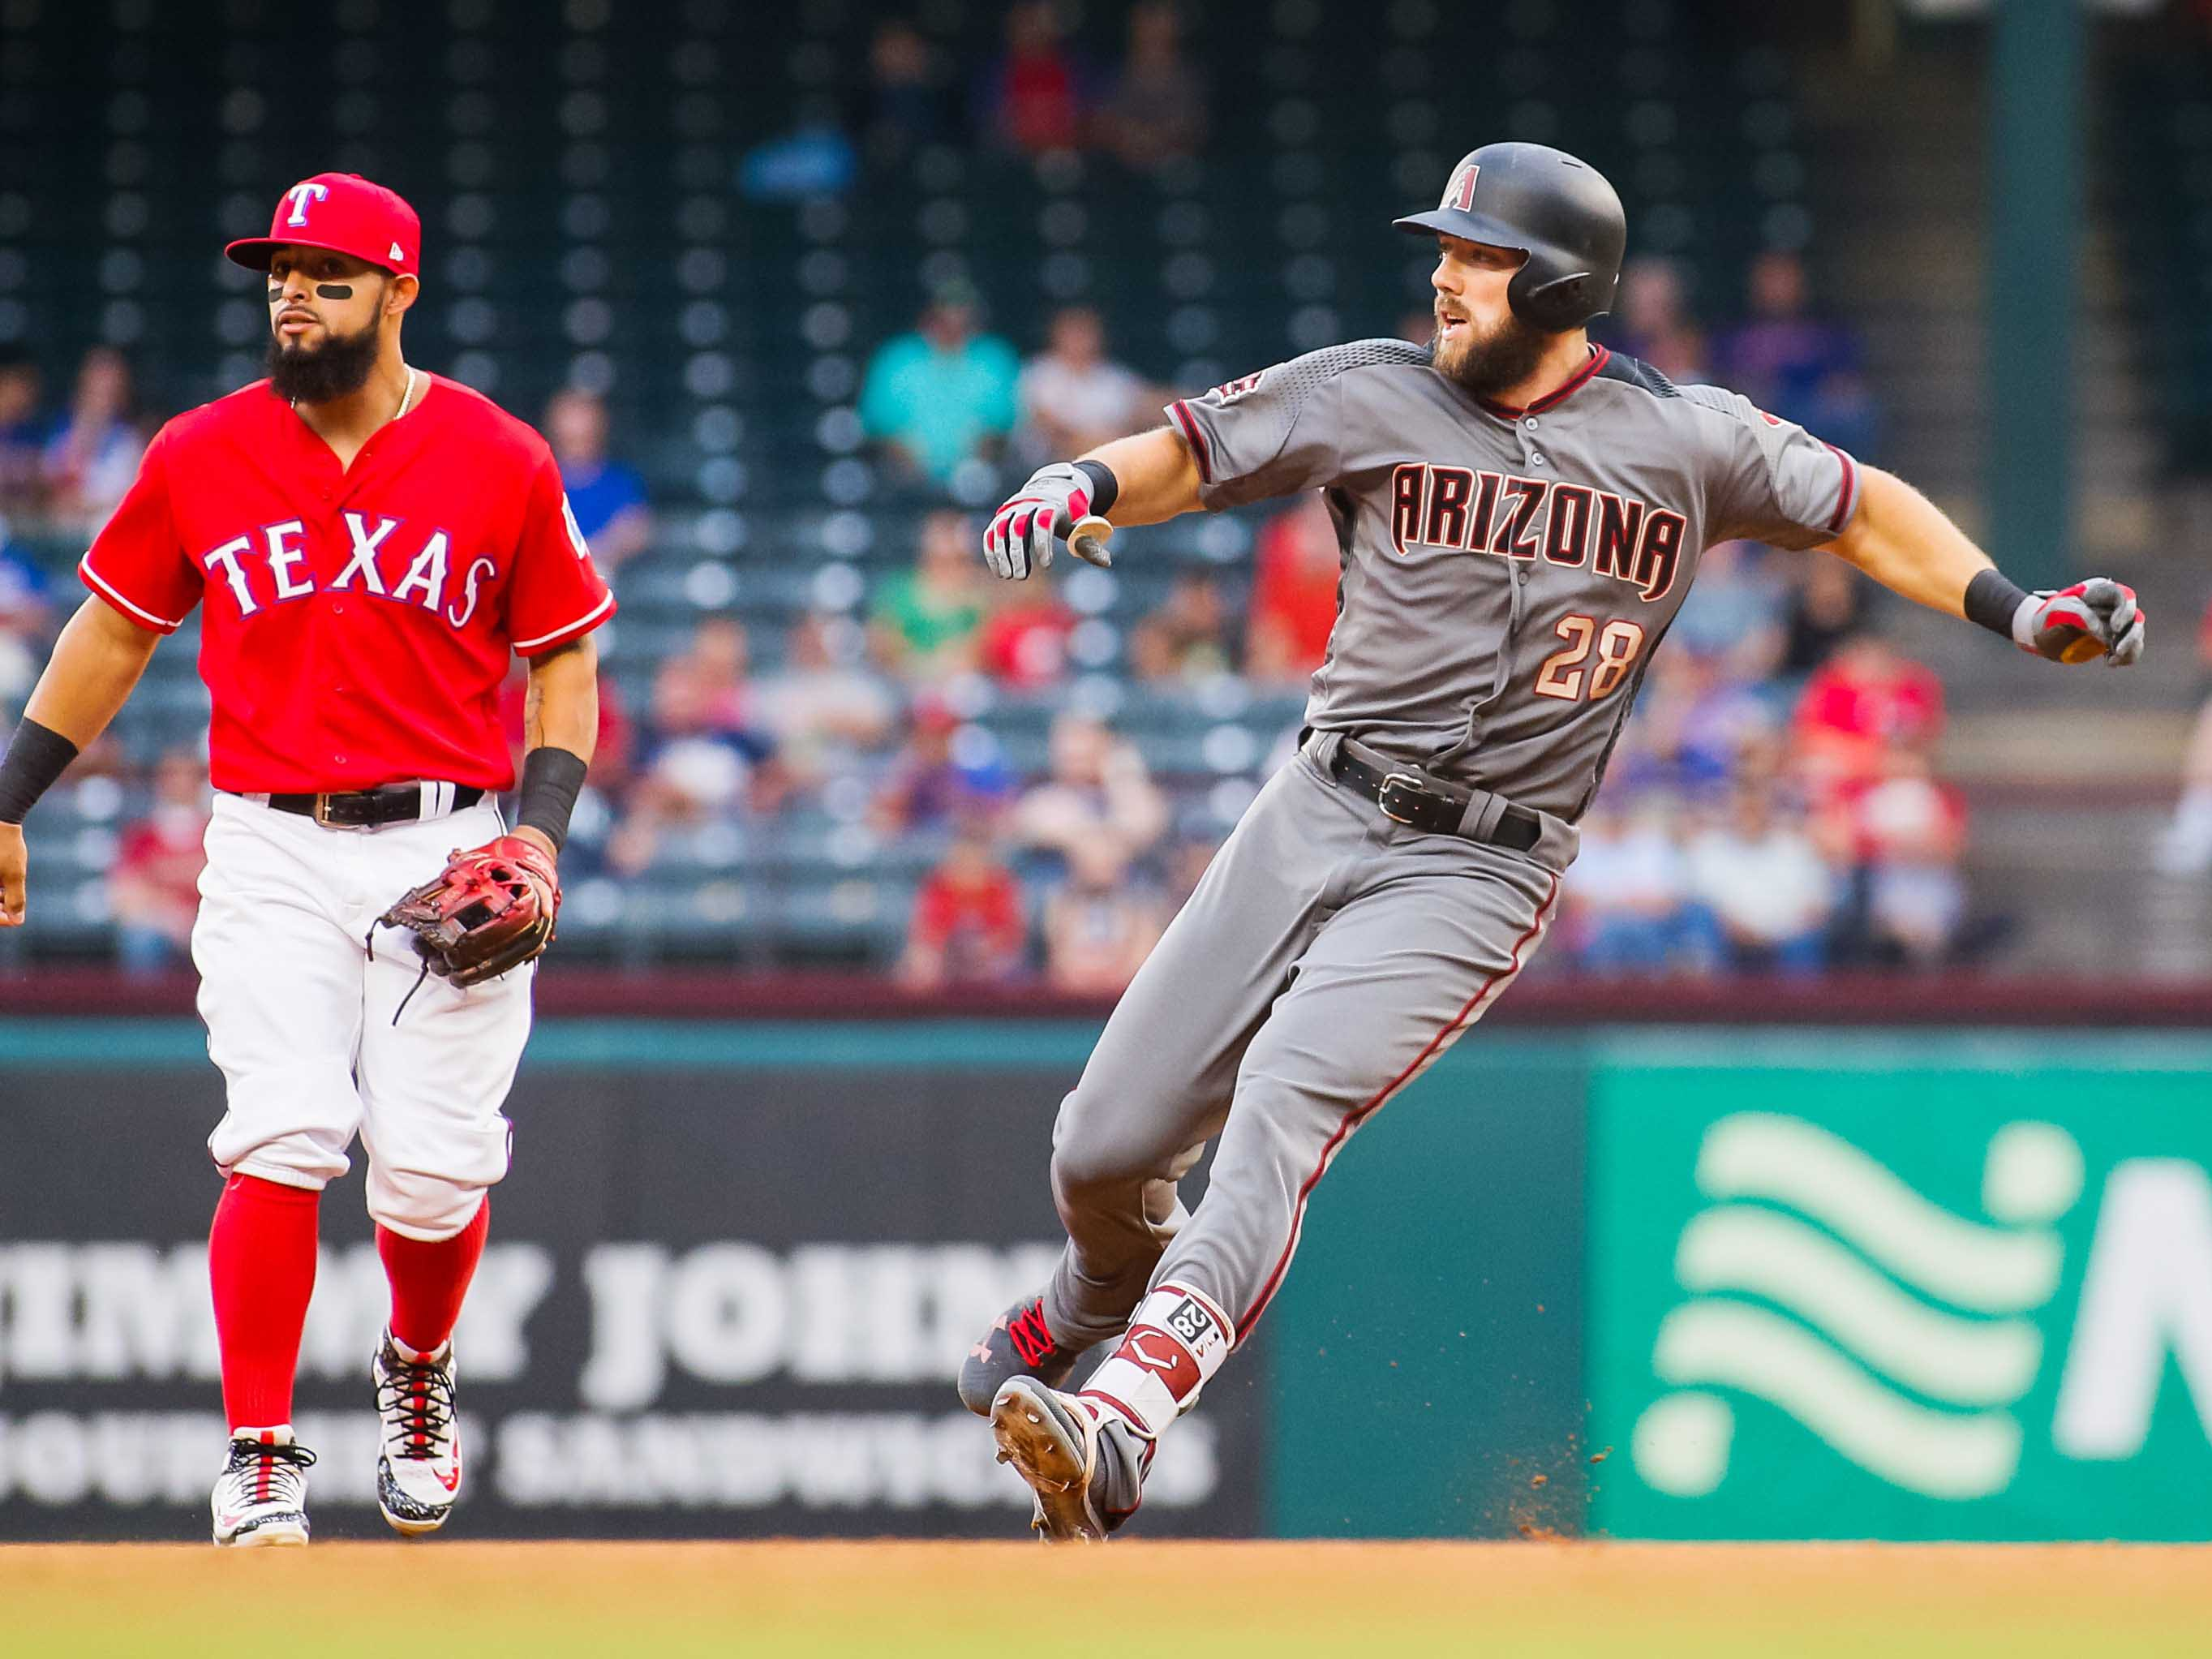 Aug 13, 2018; Arlington, TX, USA; Arizona Diamondbacks right fielder Steven Souza Jr. (28) rounds second base on a RBI double in the first inning as Texas Rangers second baseman Rougned Odor (12) looks on at Globe Life Park in Arlington. Mandatory Credit: Ray Carlin-USA TODAY Sports